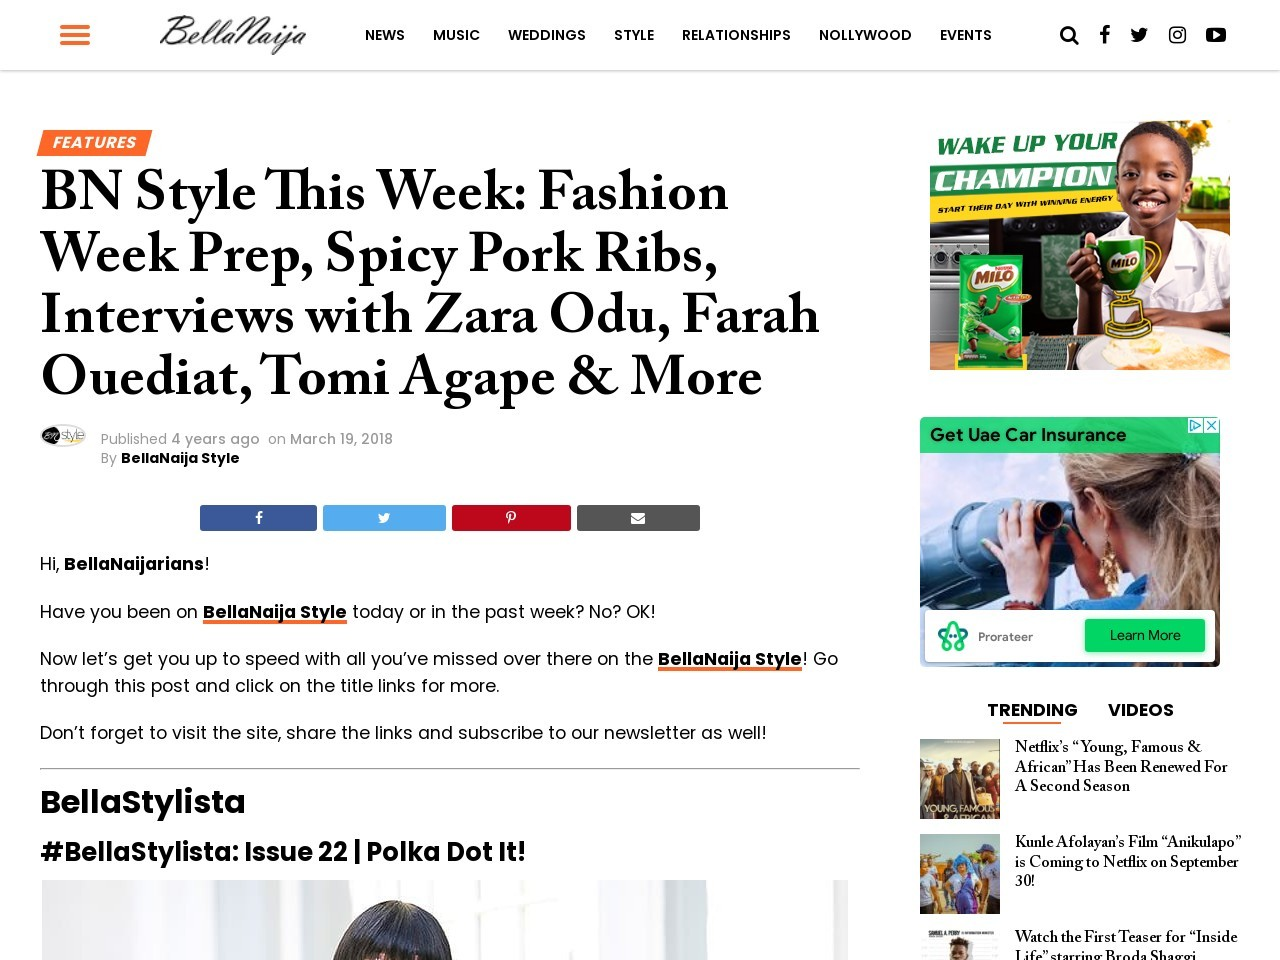 BN Style This Week: Fashion Week Prep, Spicy Pork Ribs & More